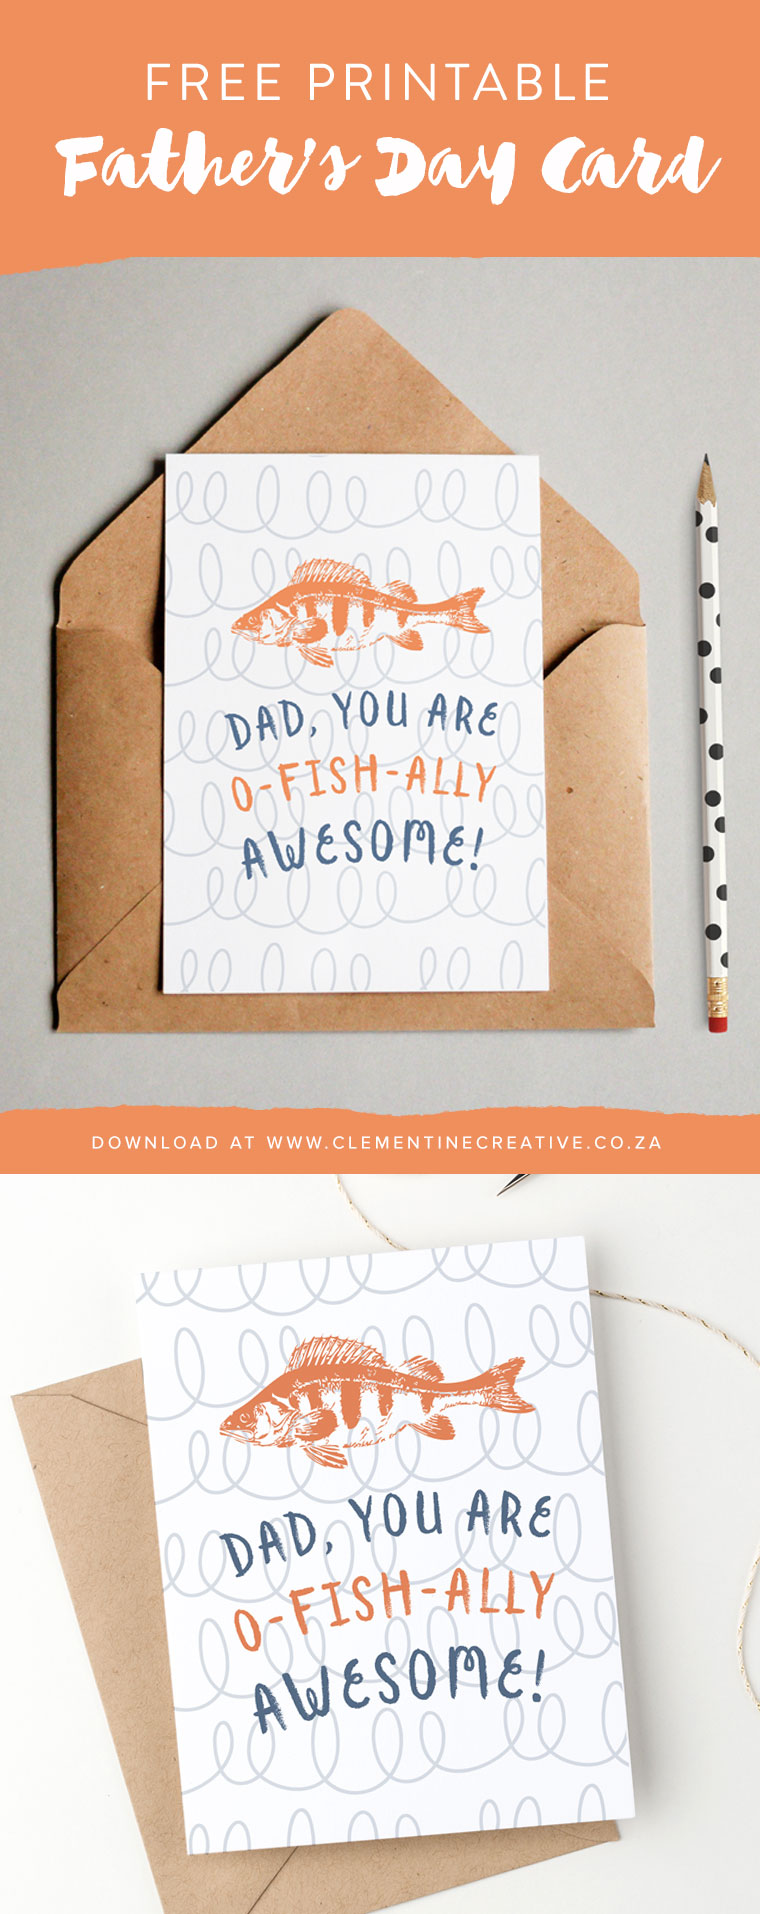 Is your dad awesome? Tell him with this free printable Father's Day card with a funny message. Download on clementine creative.